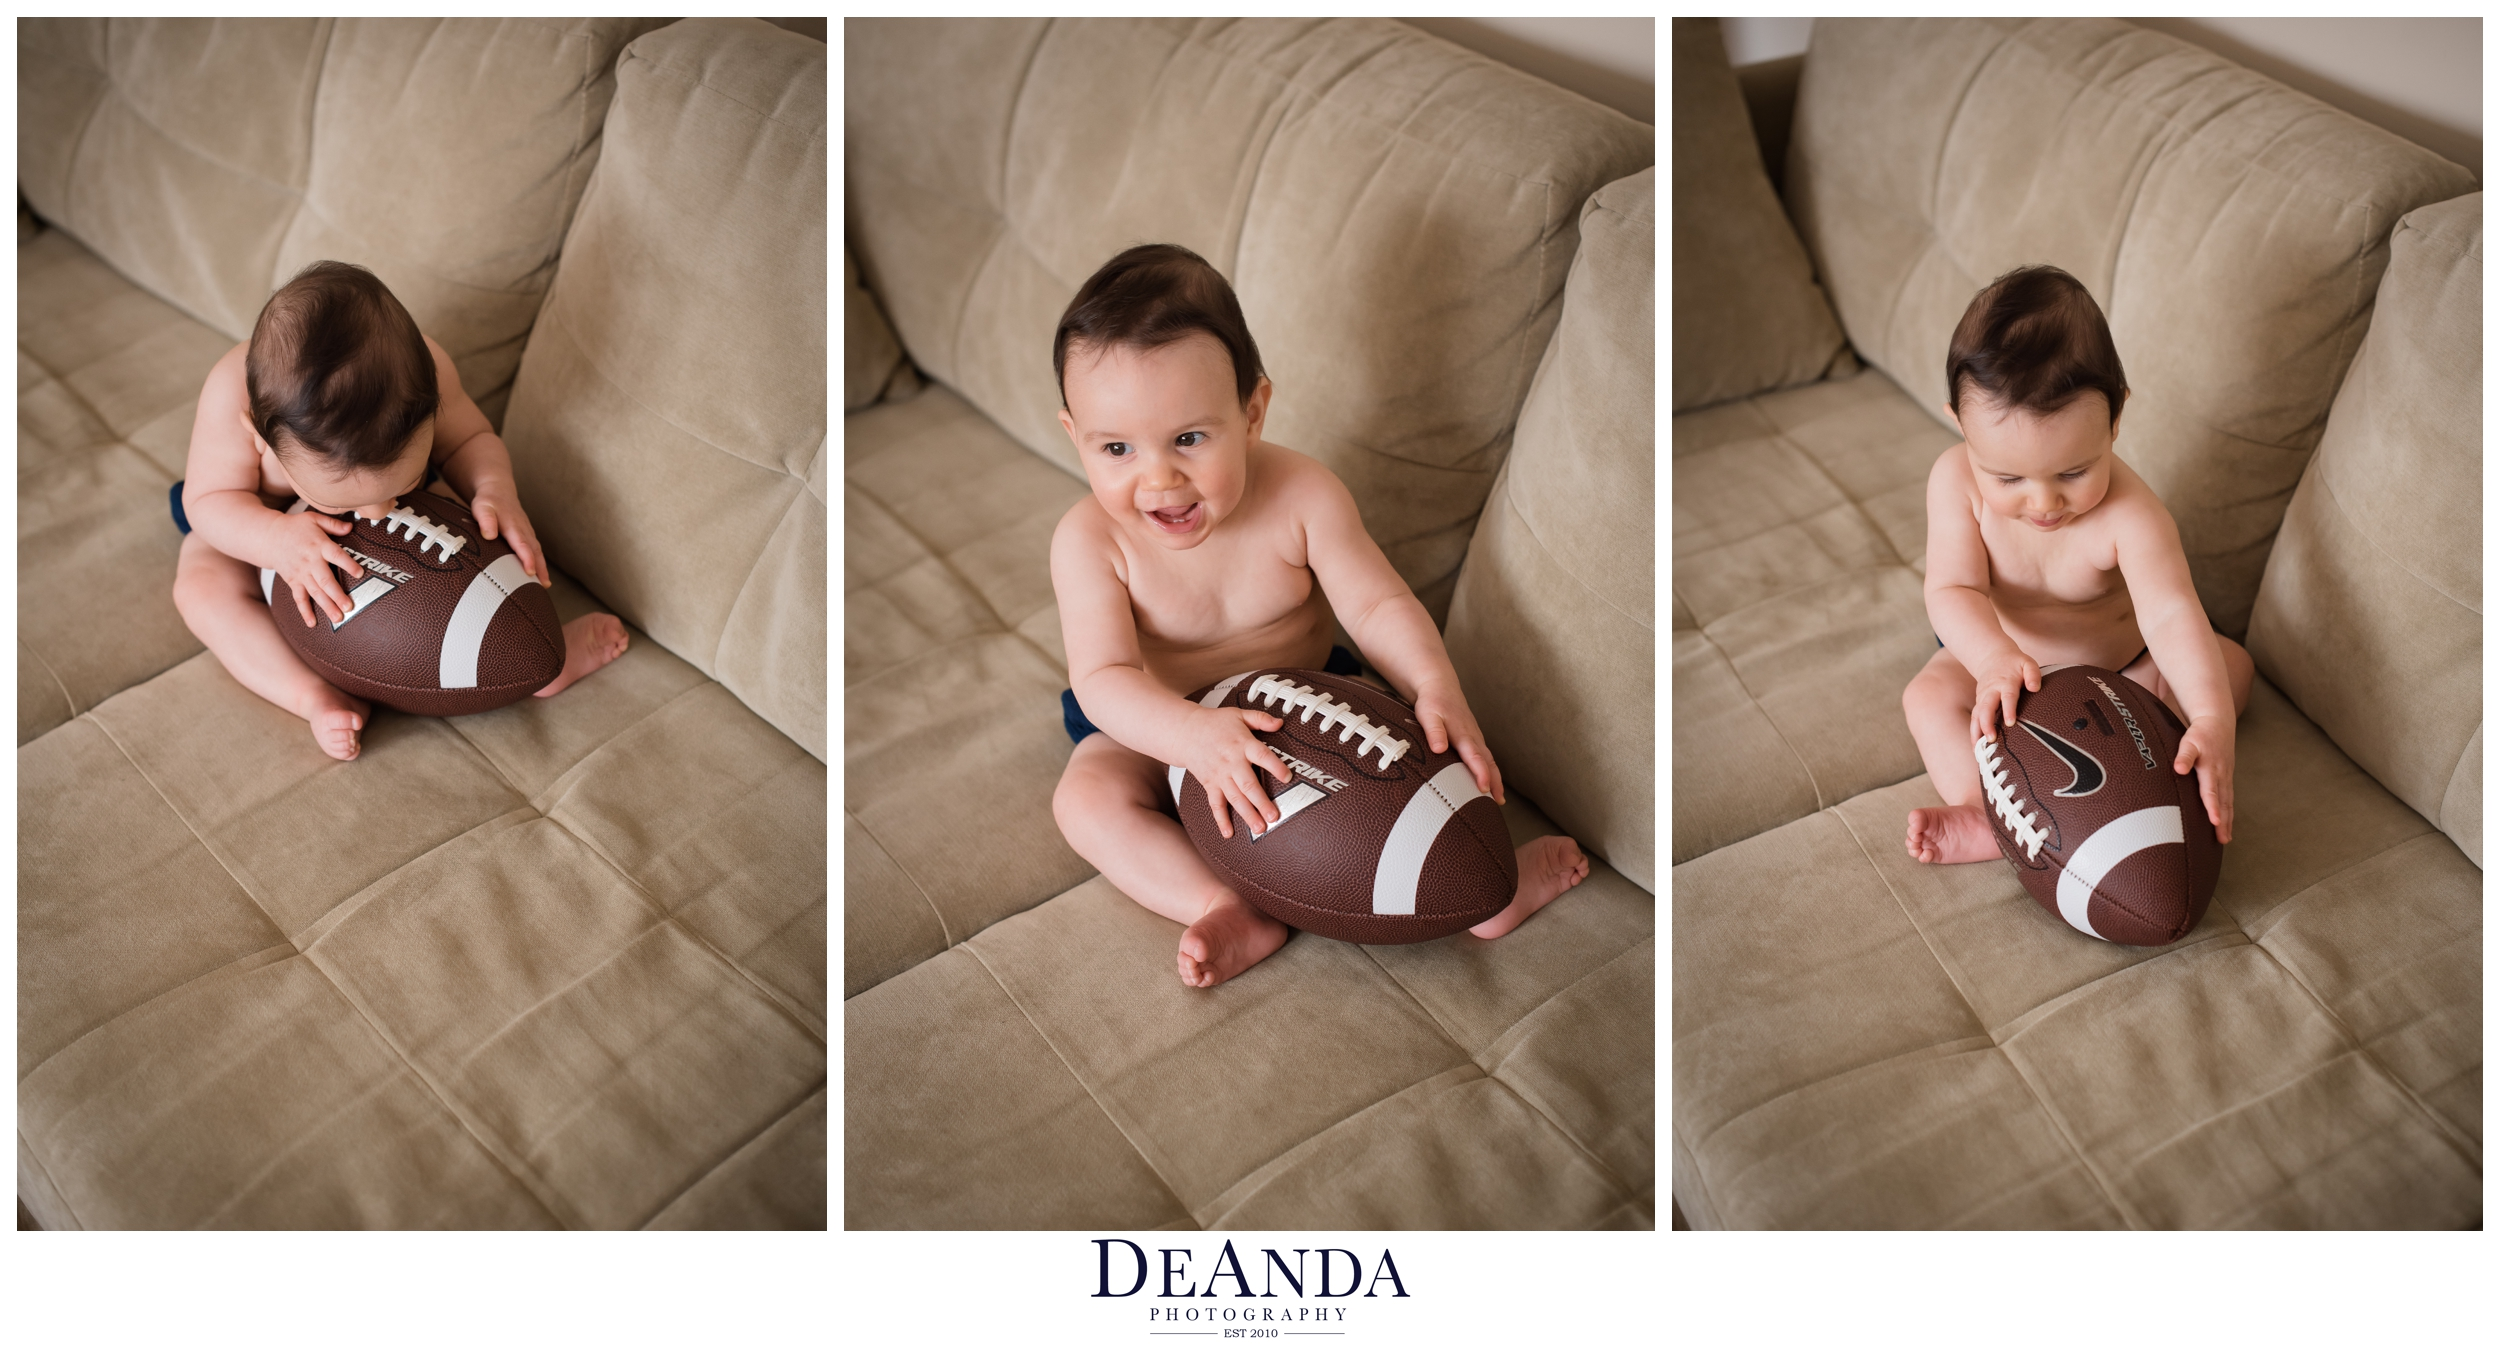 7 month old with football